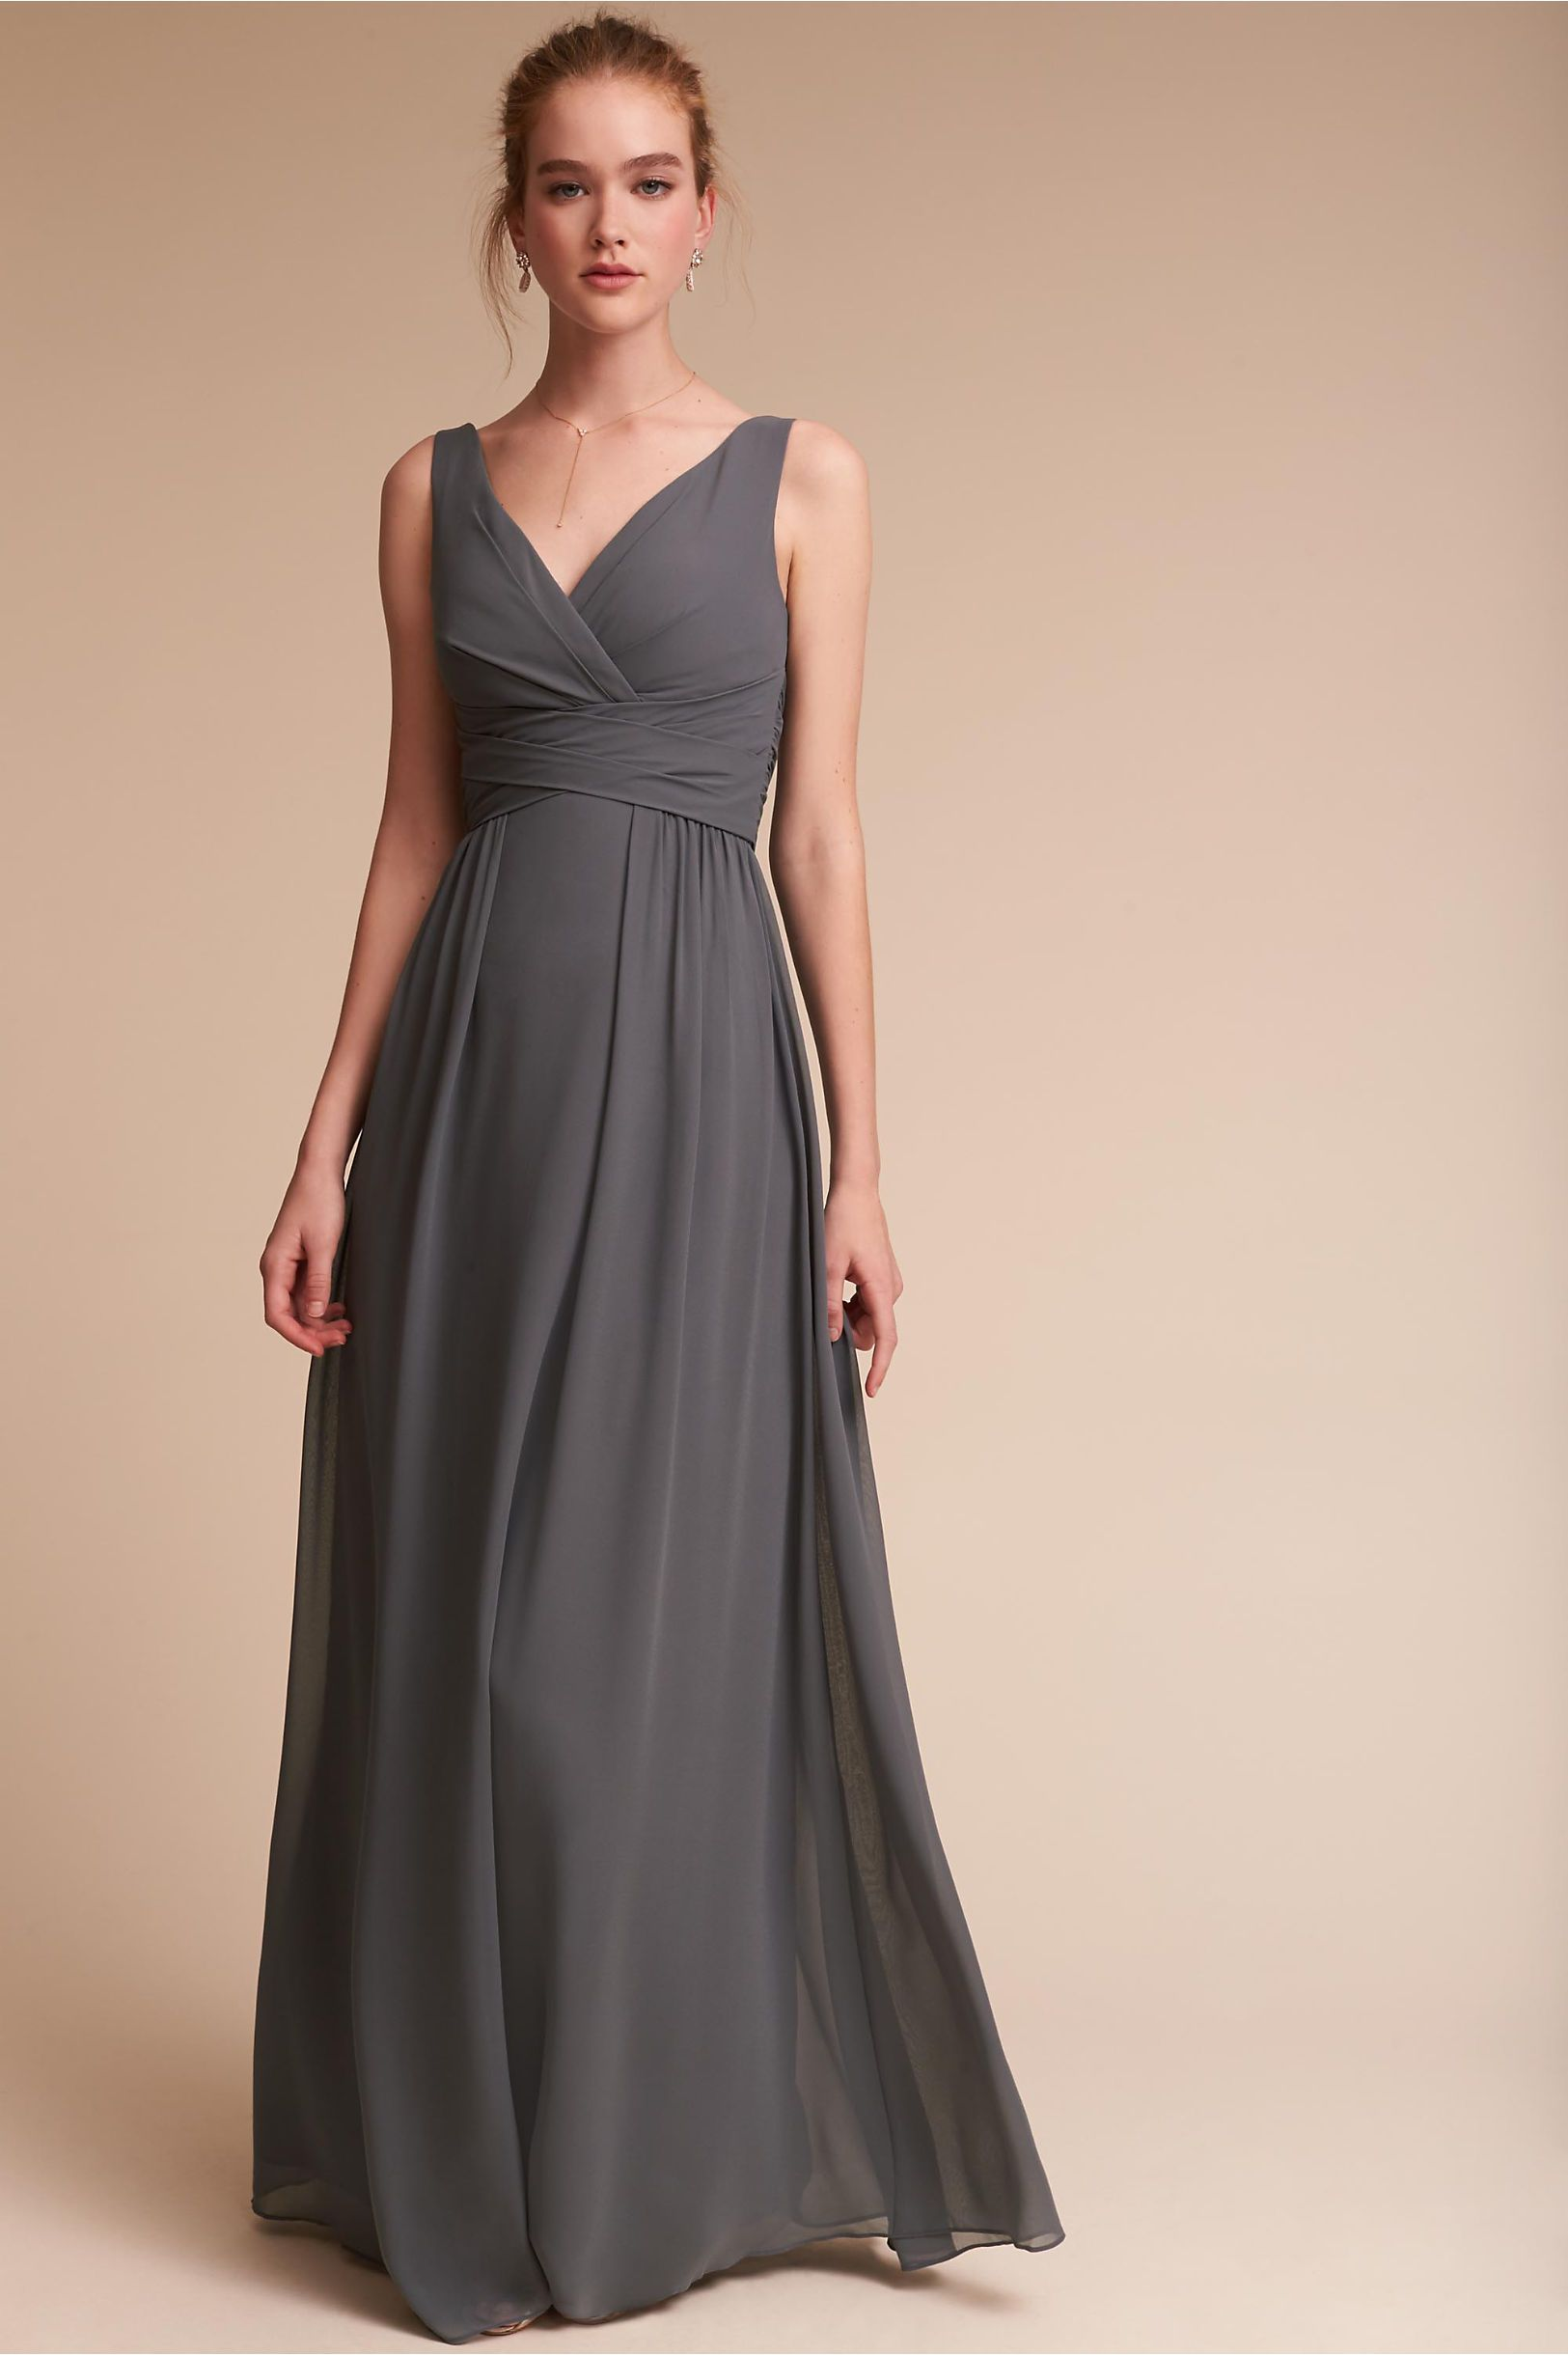 Bhldn carnegie dress in bridal party bridesmaid dresses grey bhldn carnegie dress in bridal party bridesmaid dresses grey black bhldn ombrellifo Images